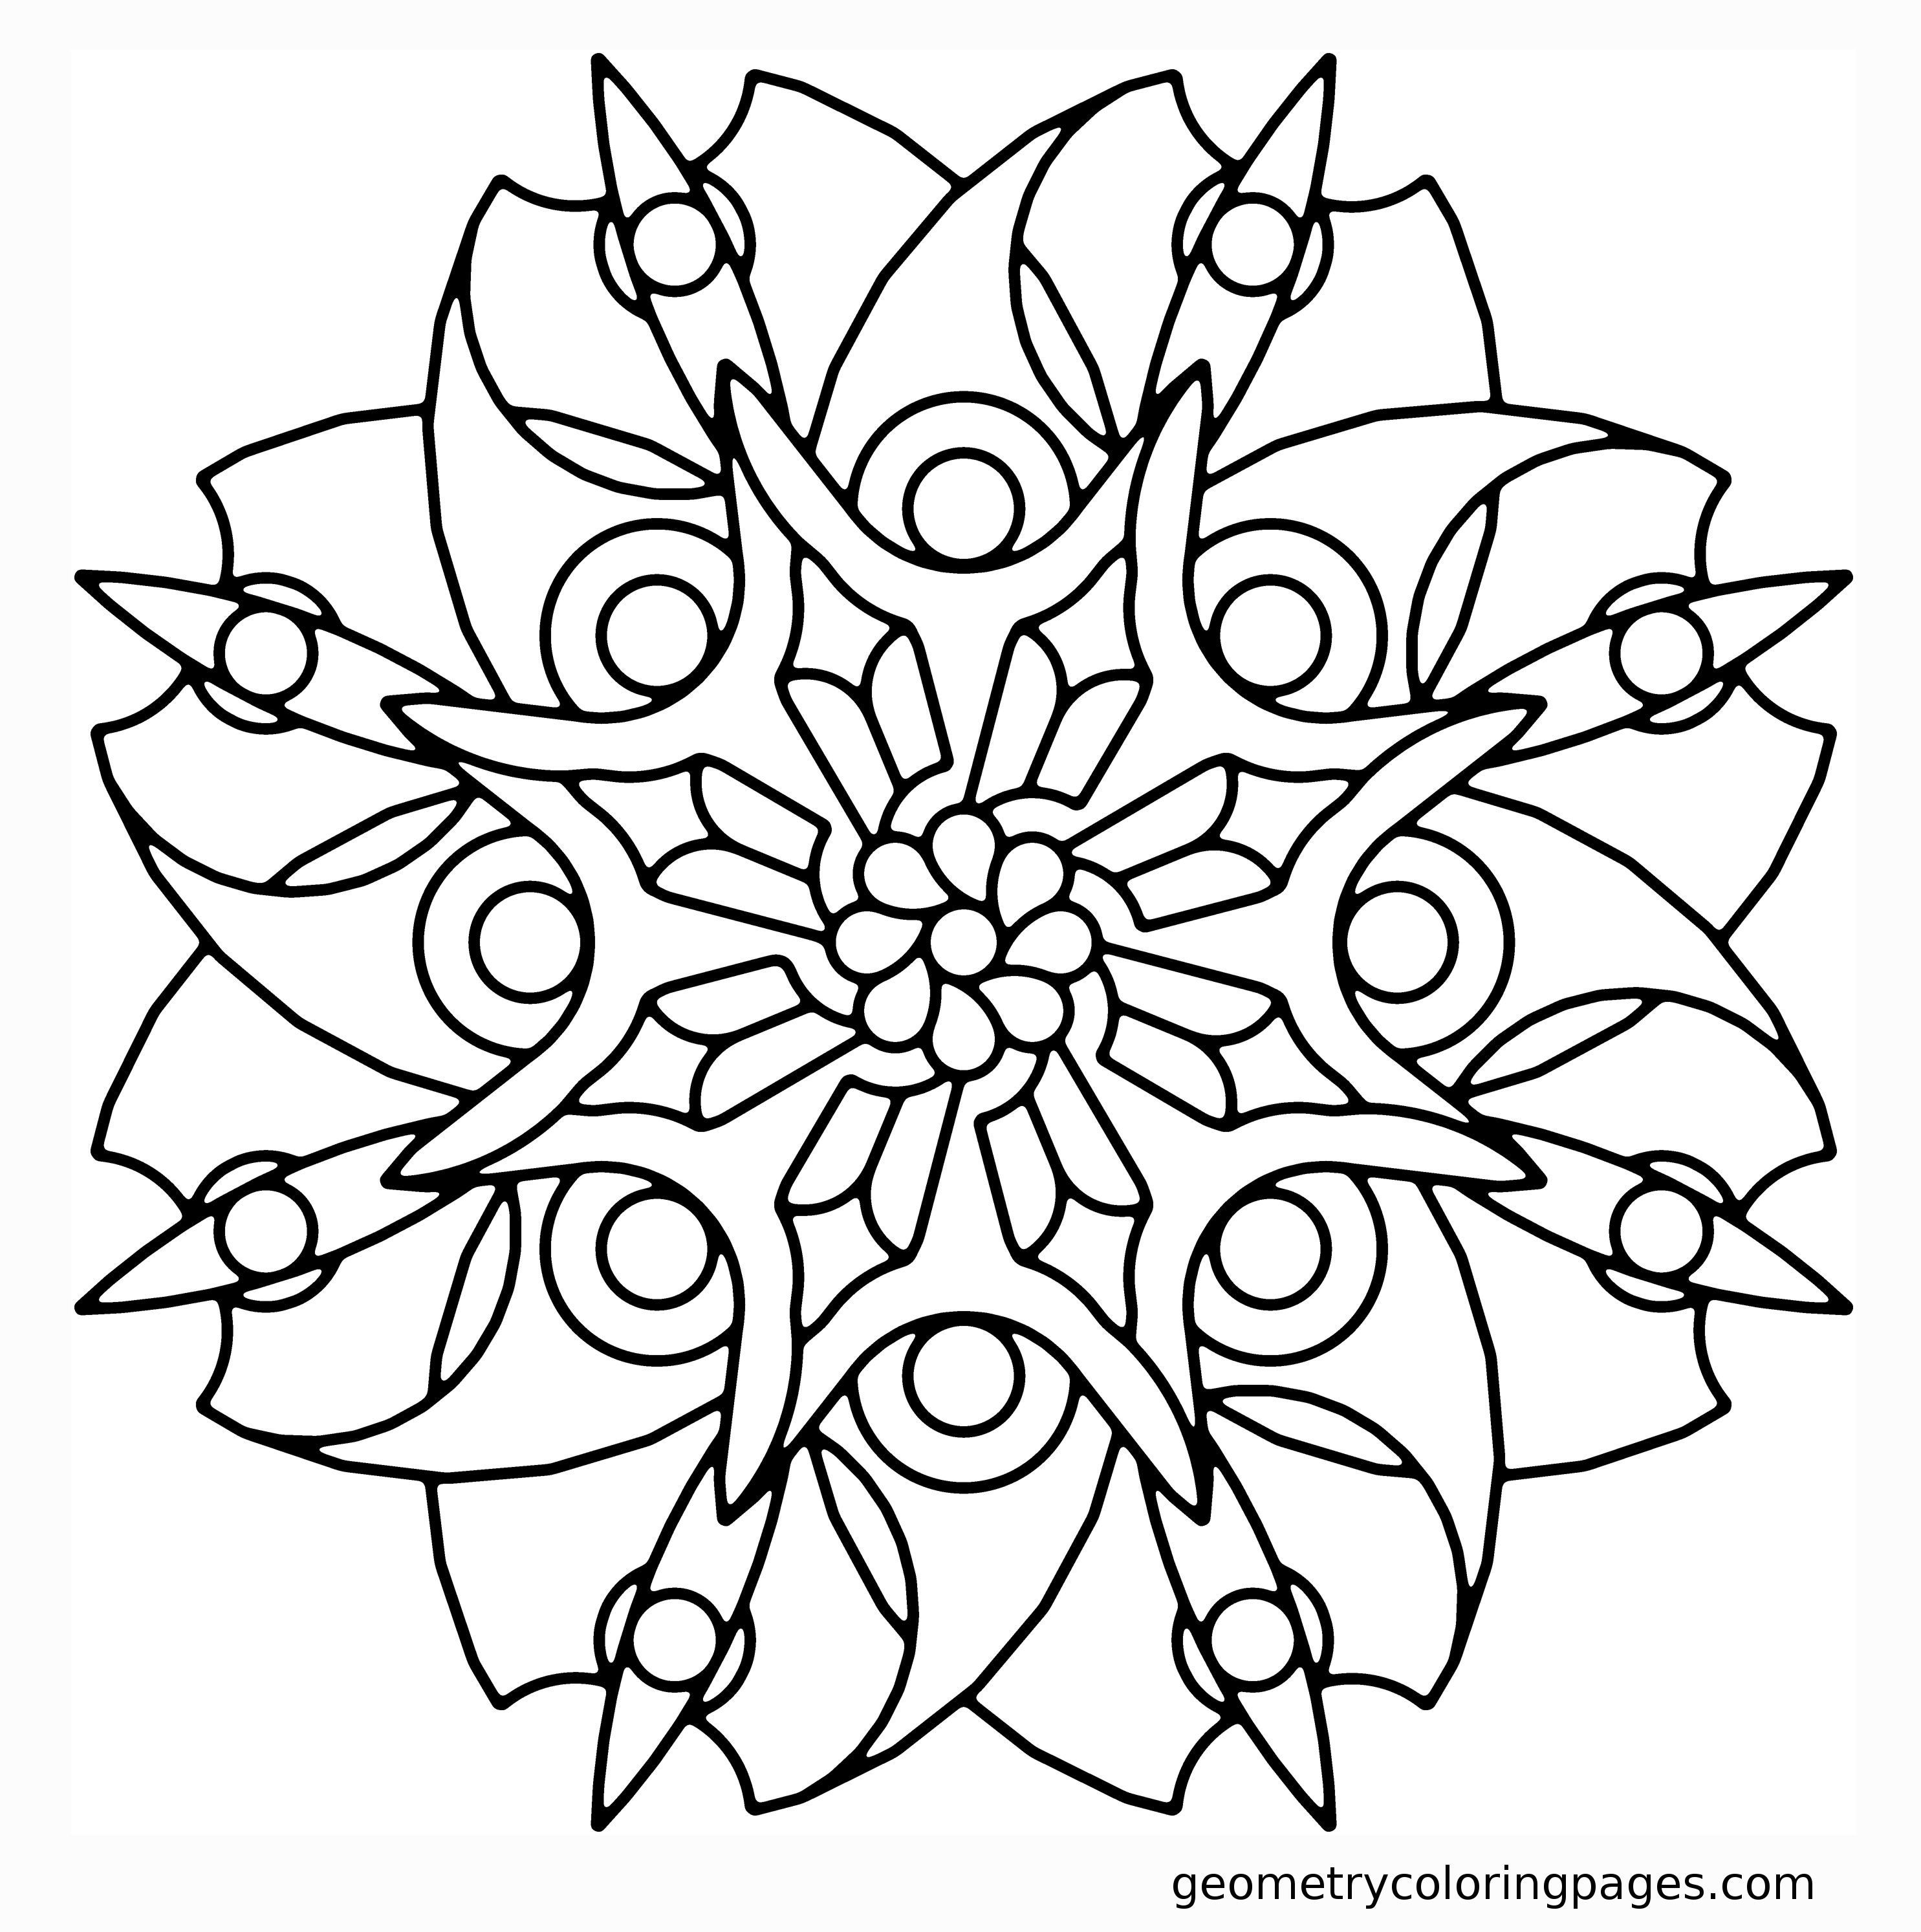 2970x2987 Blade Flower Geometry Coloring Pages Coloring